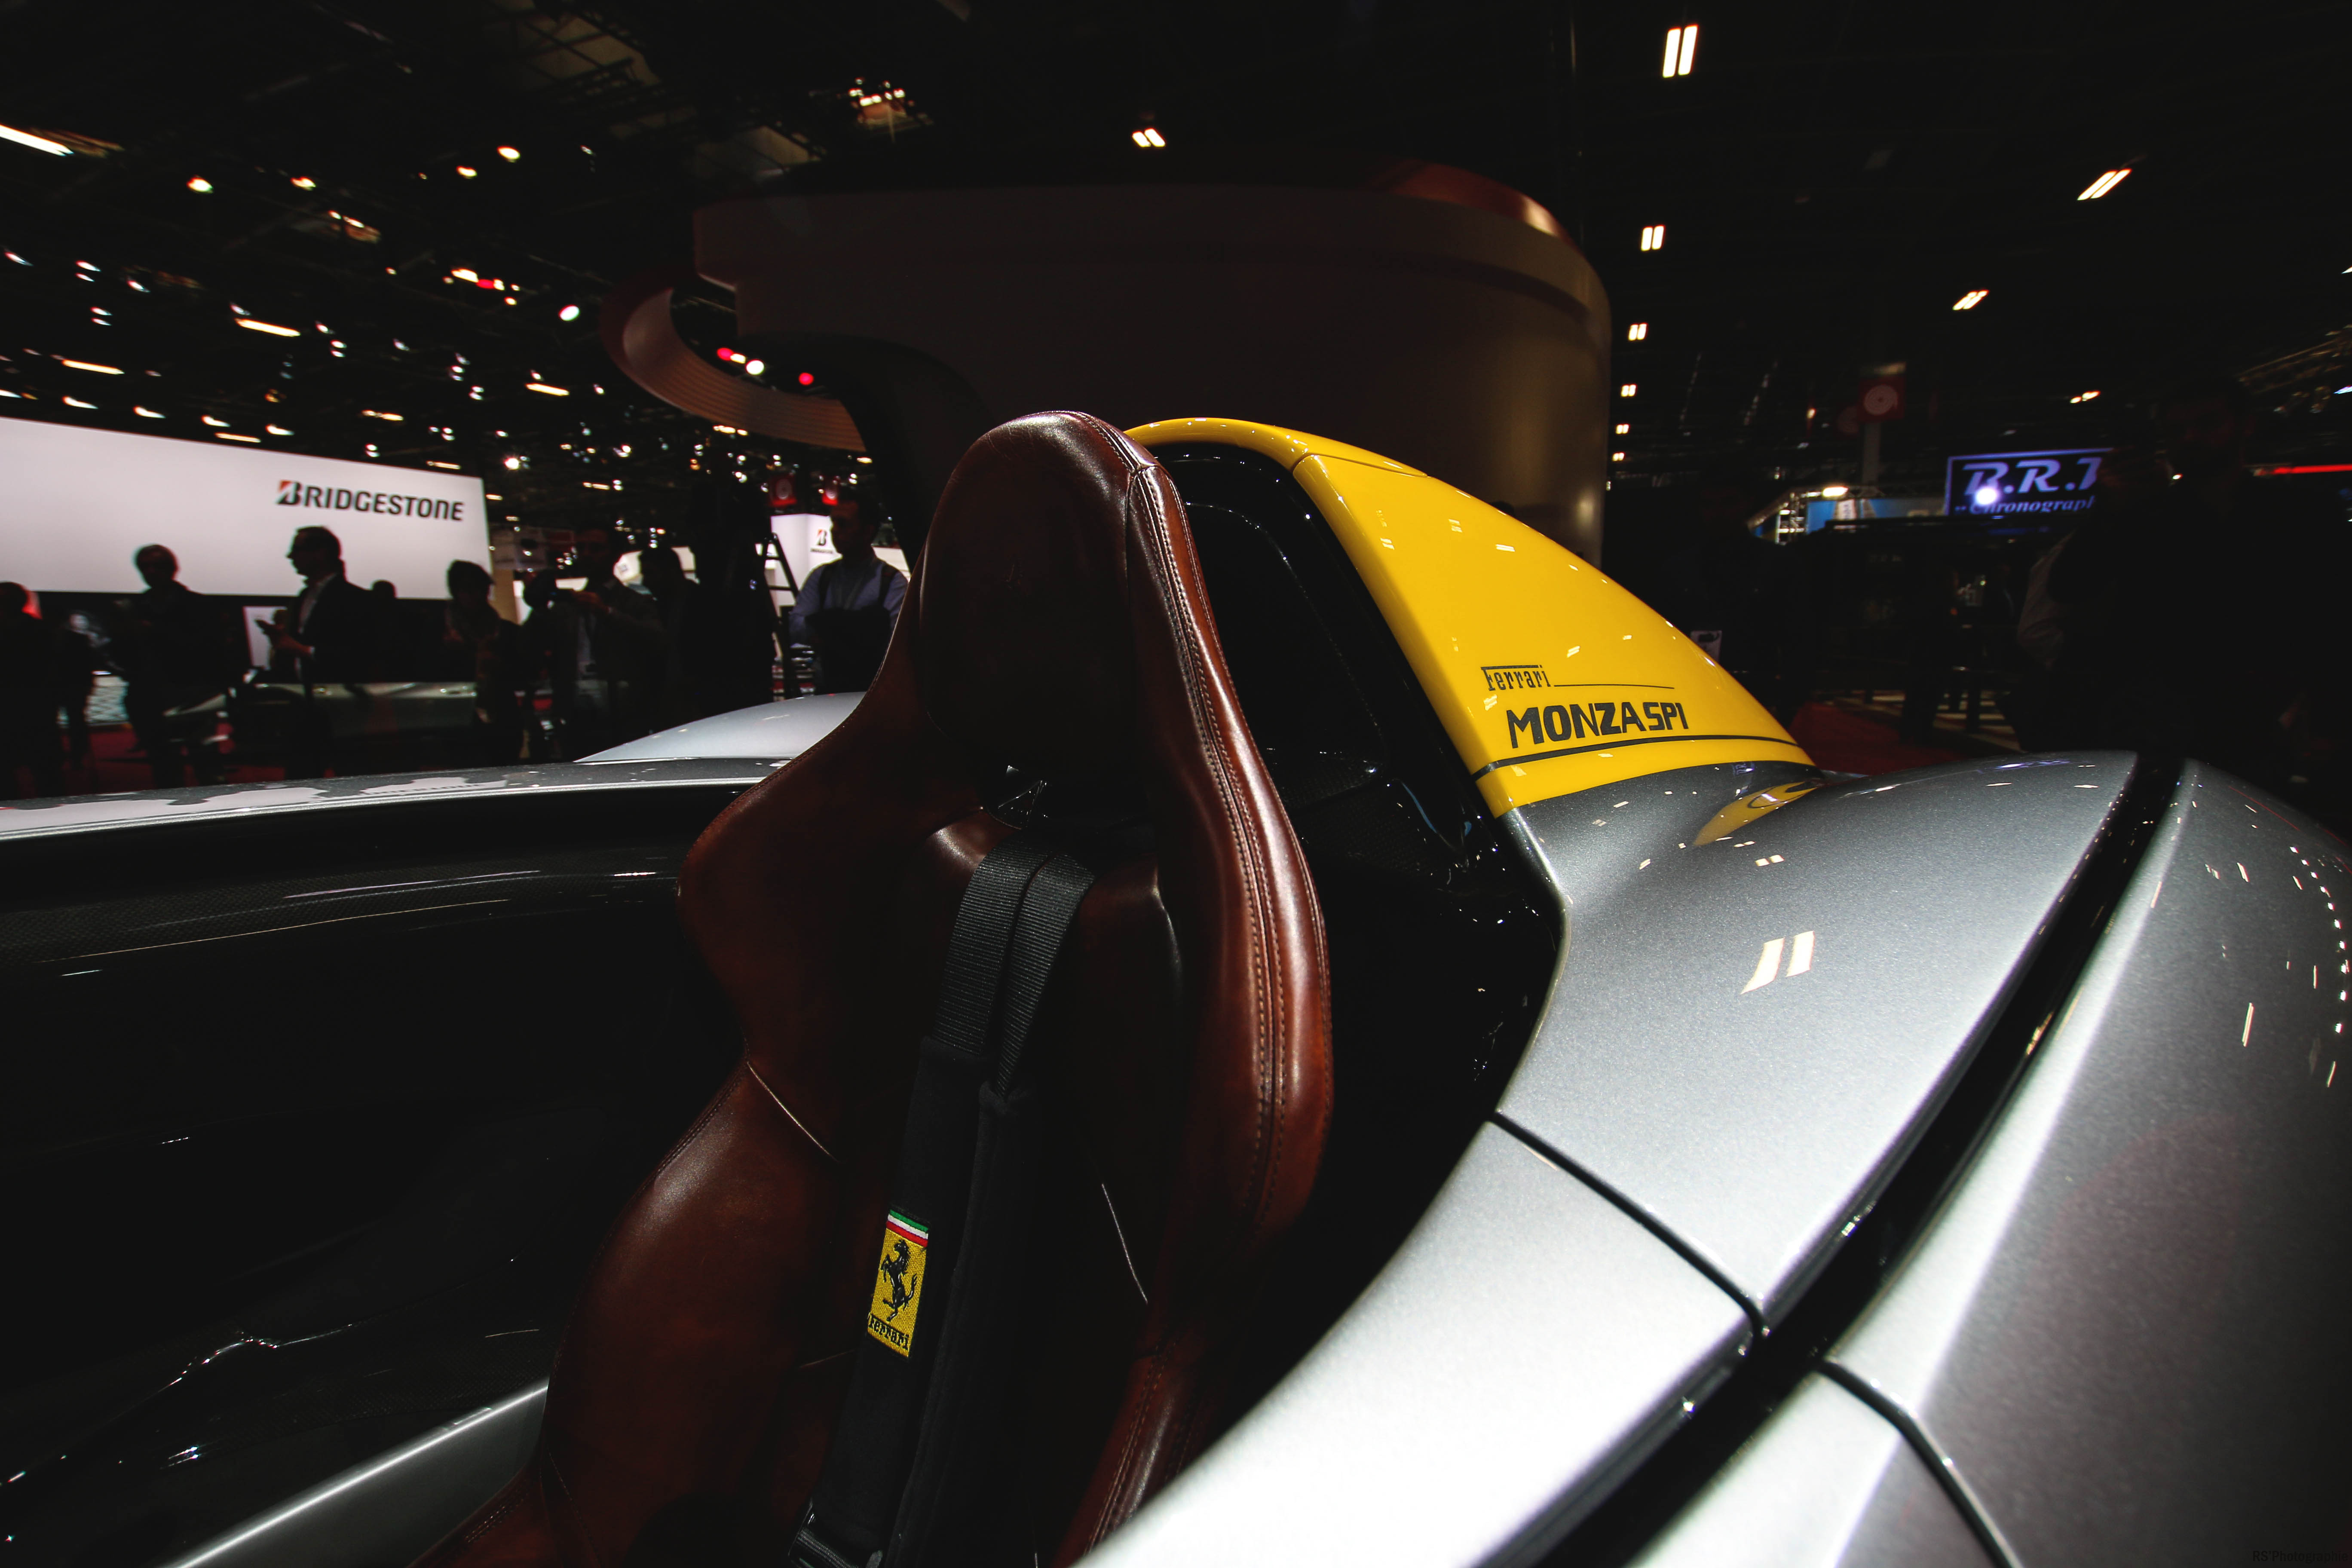 Ferrari Monza SP1 - seat - Paris Motor Show - 2018 - Mondial Auto - photo by Arnaud Demasier RS Photographie